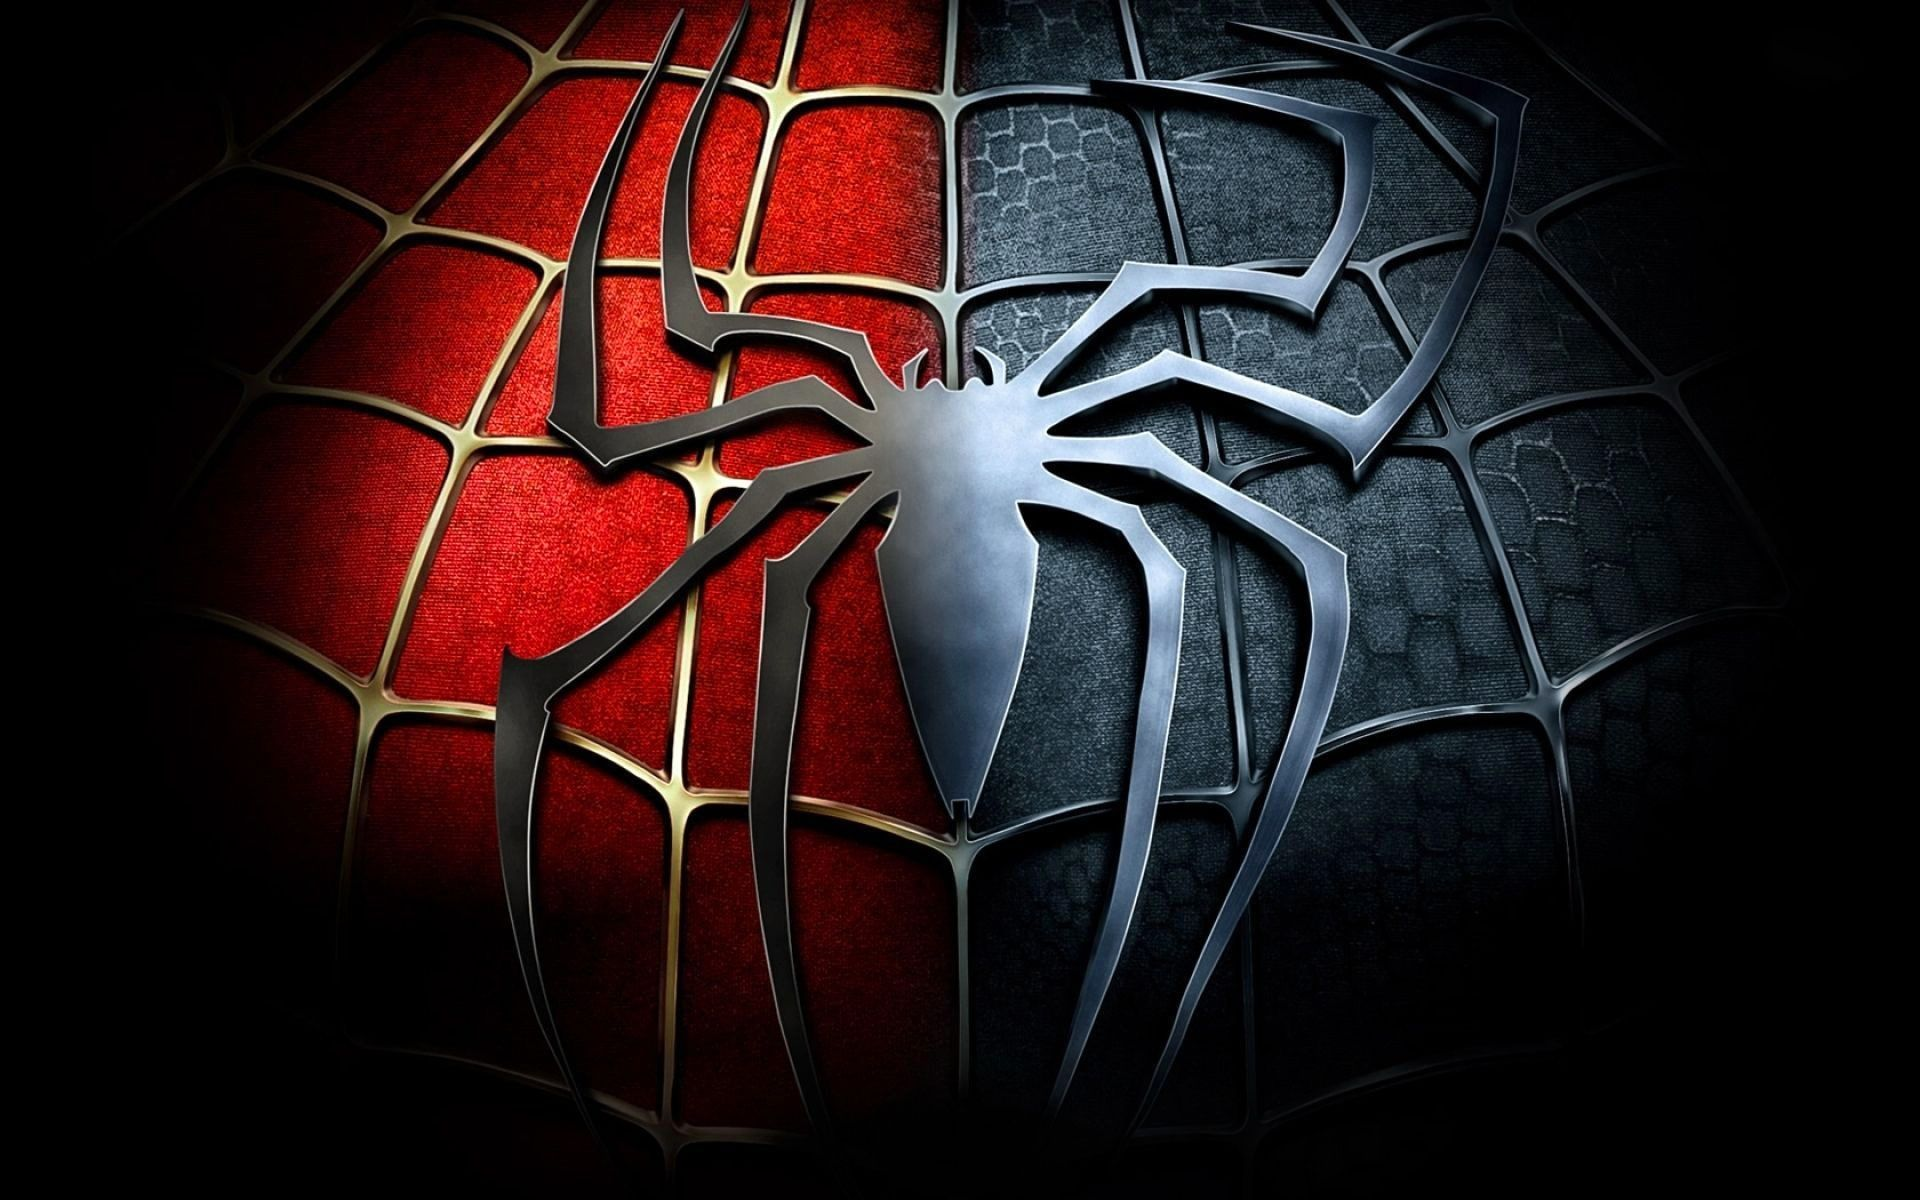 Spider Man Logo Spider Man Logo Logo Spider Man Web Spider 1080p Wallpaper Hdwallpaper Desktop In 2020 Logo Wallpaper Hd Spiderman Superhero Wallpaper